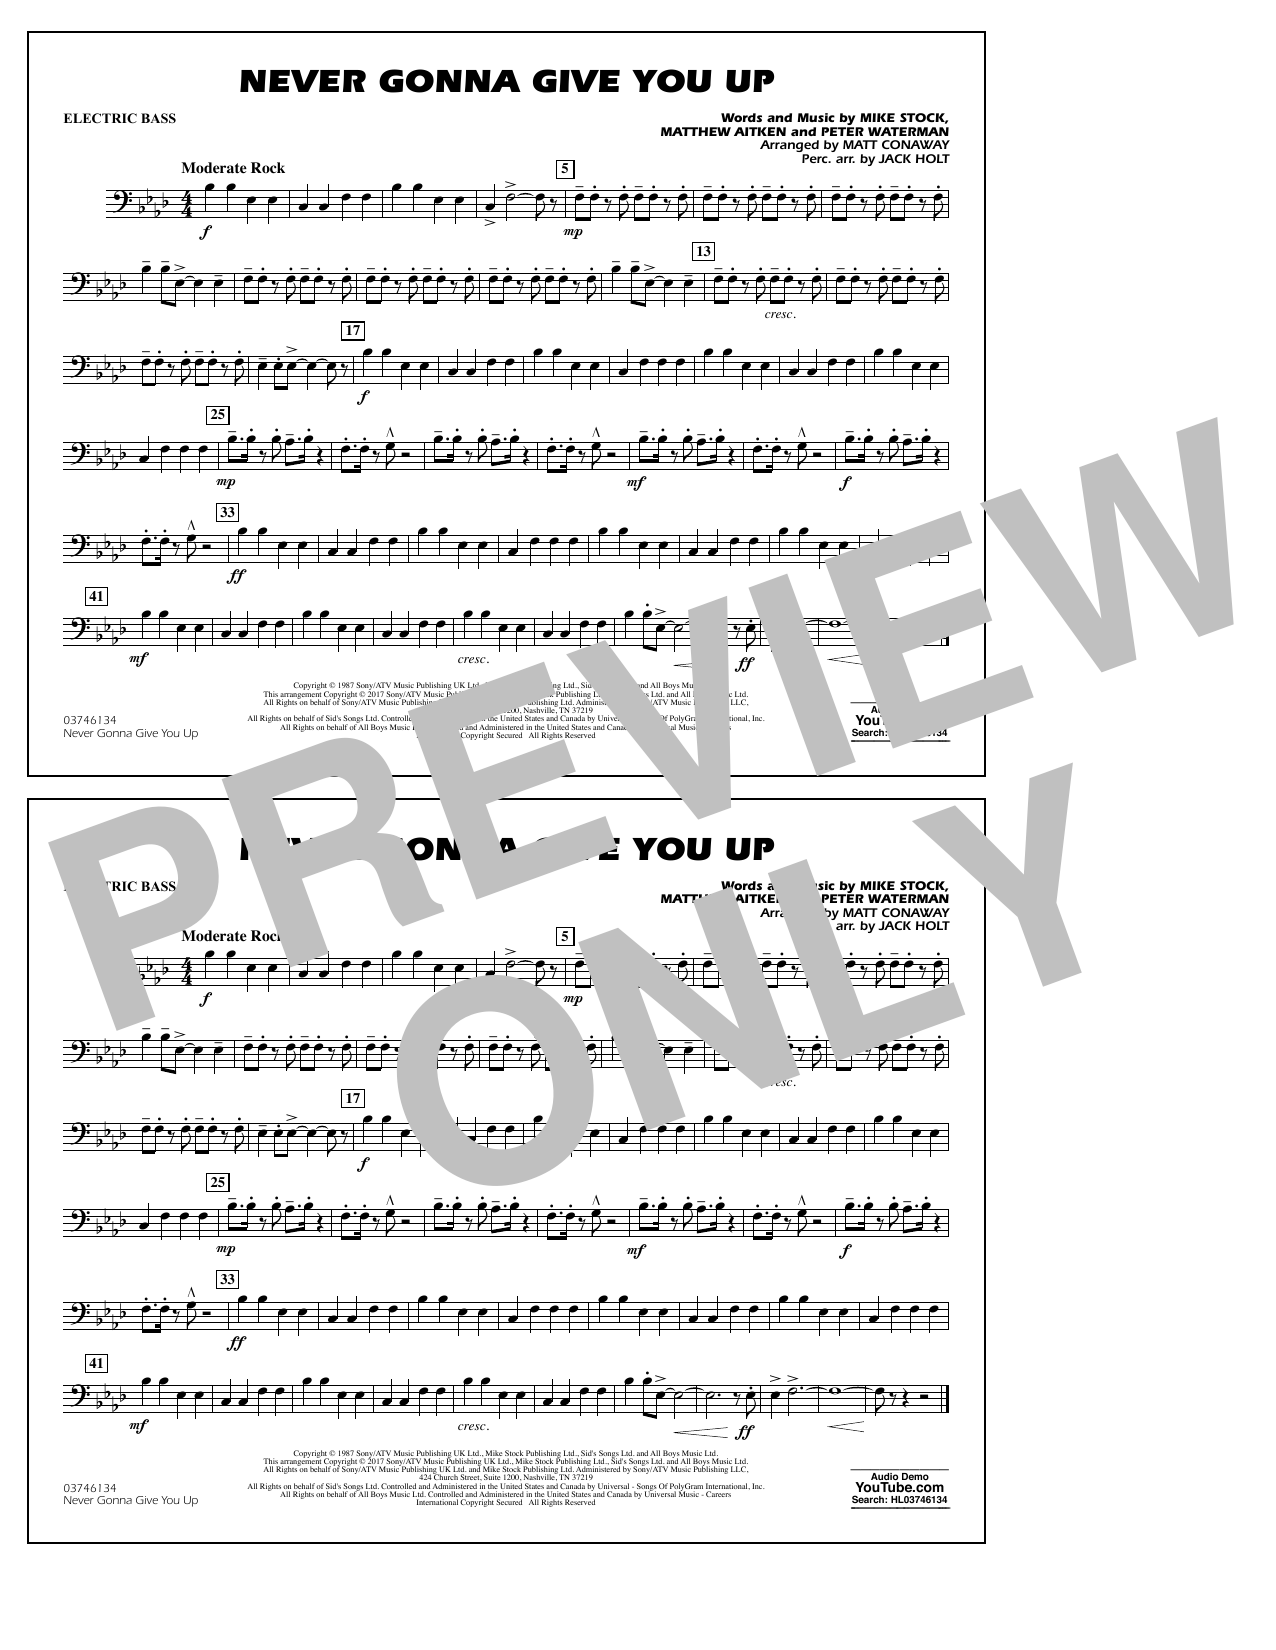 Never Gonna Give You Up - Electric Bass Sheet Music